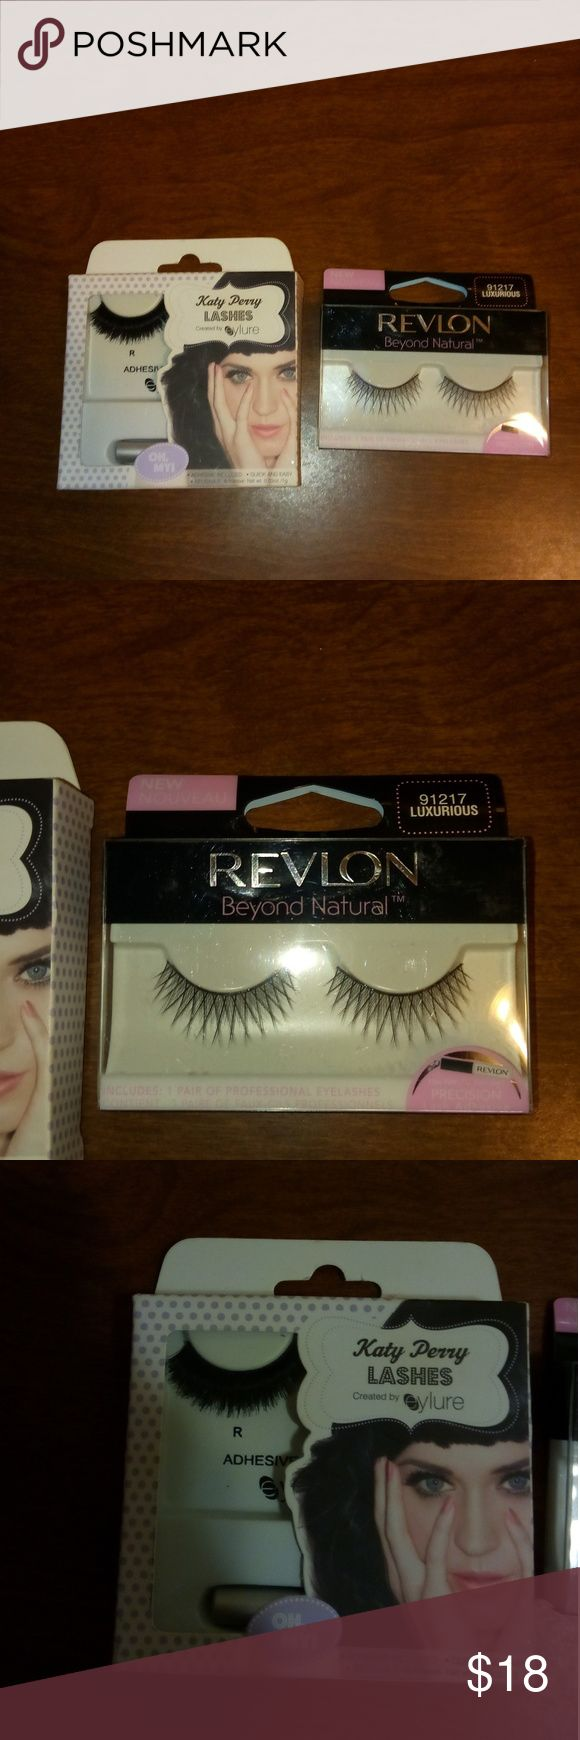 Fake eyelashes. One-brand is Katy Perry lashes created by Allure very thick and full lash. Never been used. The other lashes. Are made from Revlon. Long Lash but thinner. Never been worn. They have never been taken out of the box. Both come with the glue. Glamorous!!! 👀👀👀👁️👁️👁️👁️💕💕 Katy Perry lashes Other